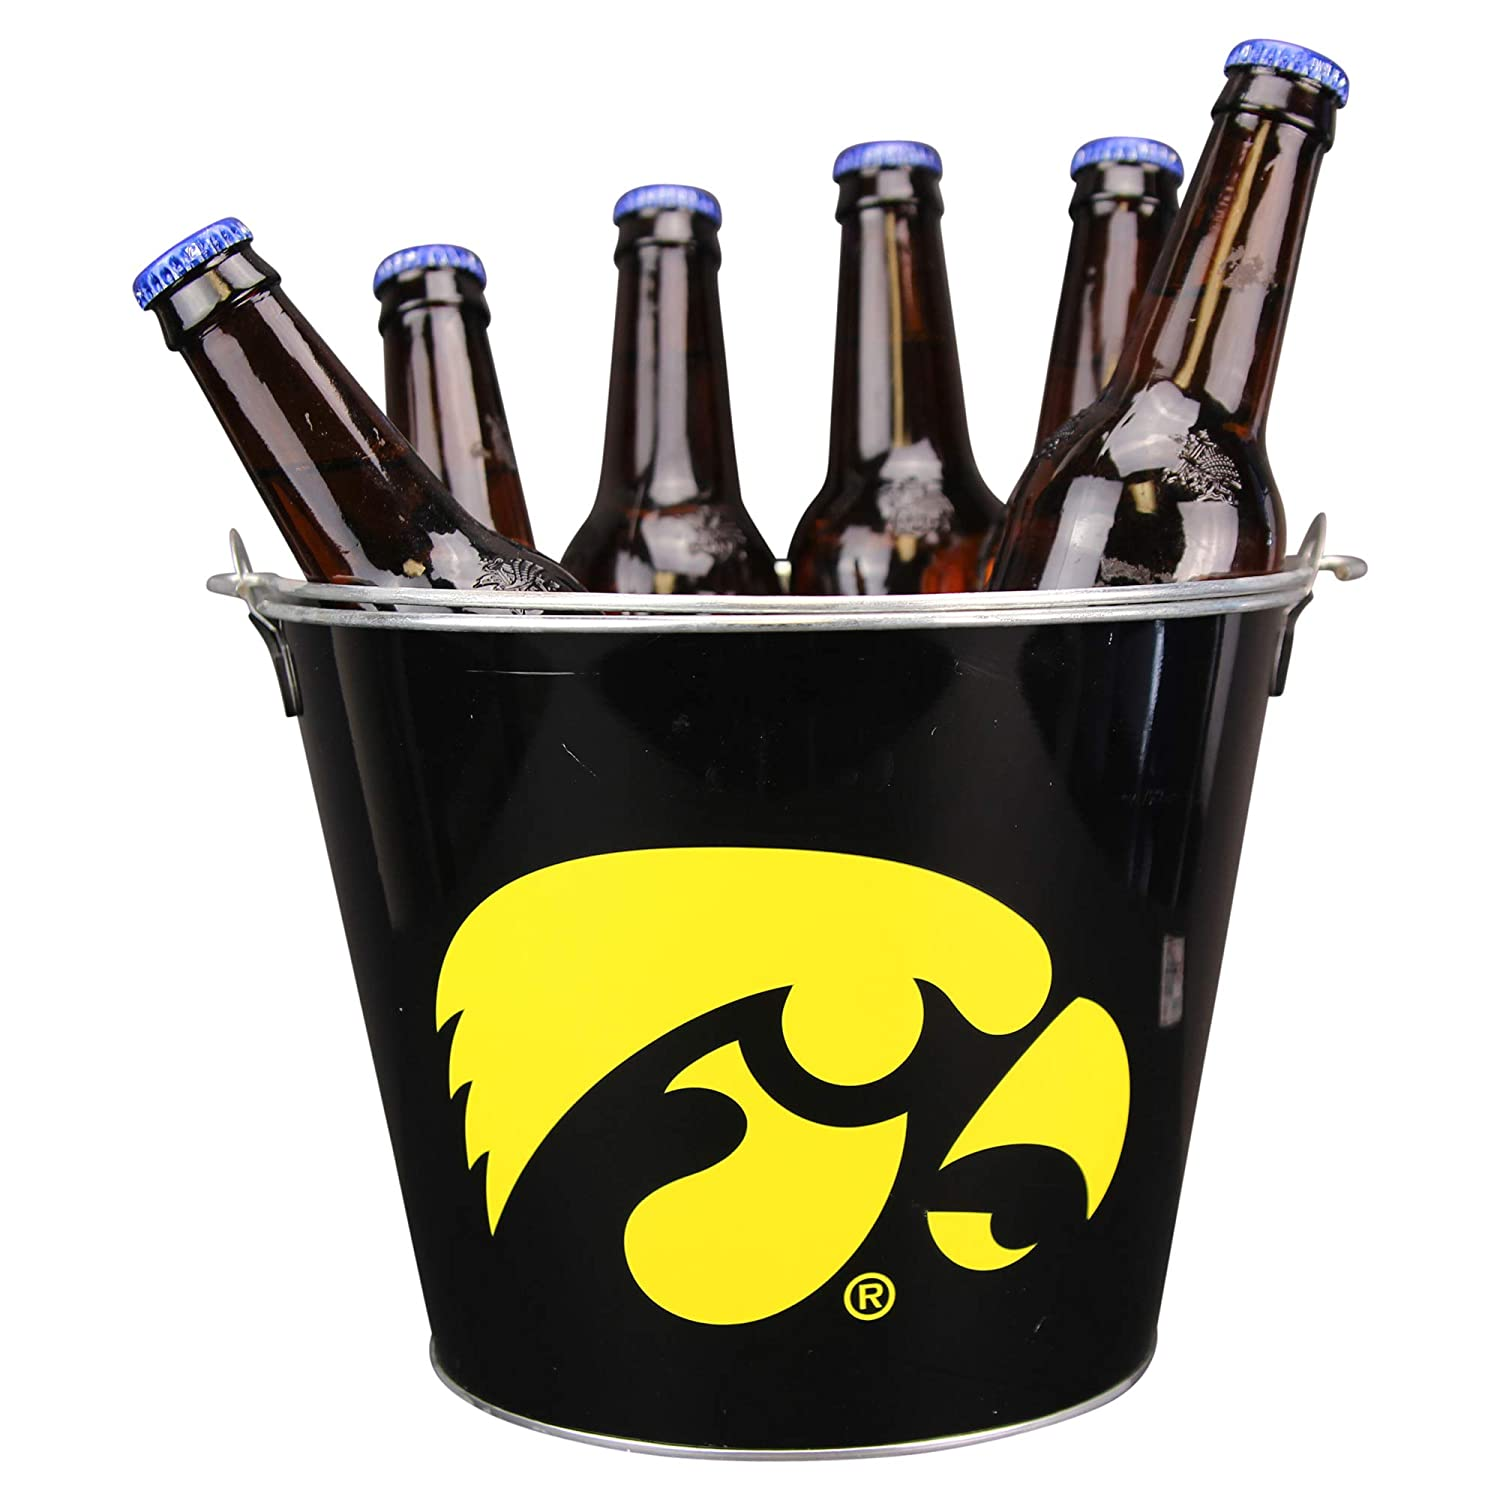 Holds 5+ Beers and Ice NCAA Collegiate Full Color Beer Buckets